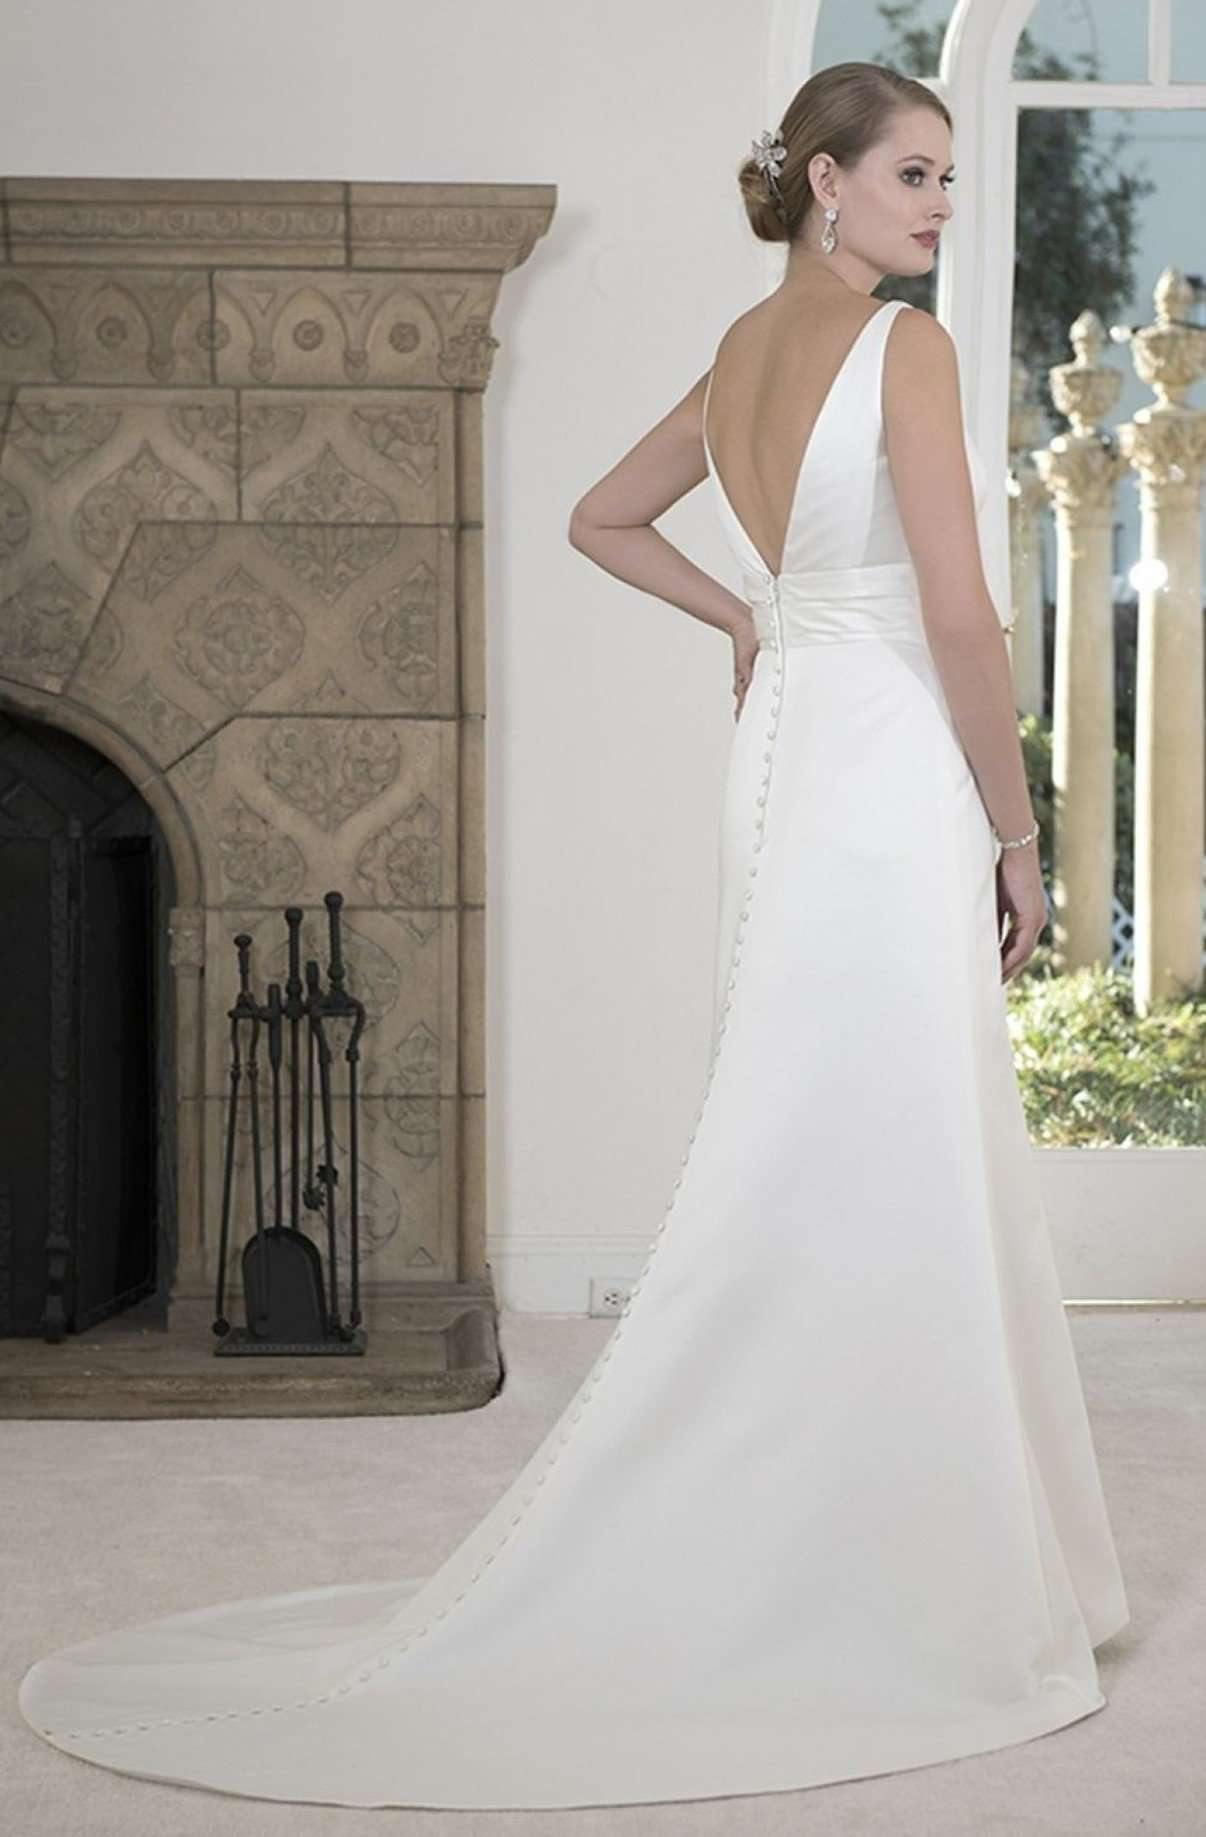 UK14 - VENUS - AMELIA - SALE - Adore Bridal and Occasion Wear